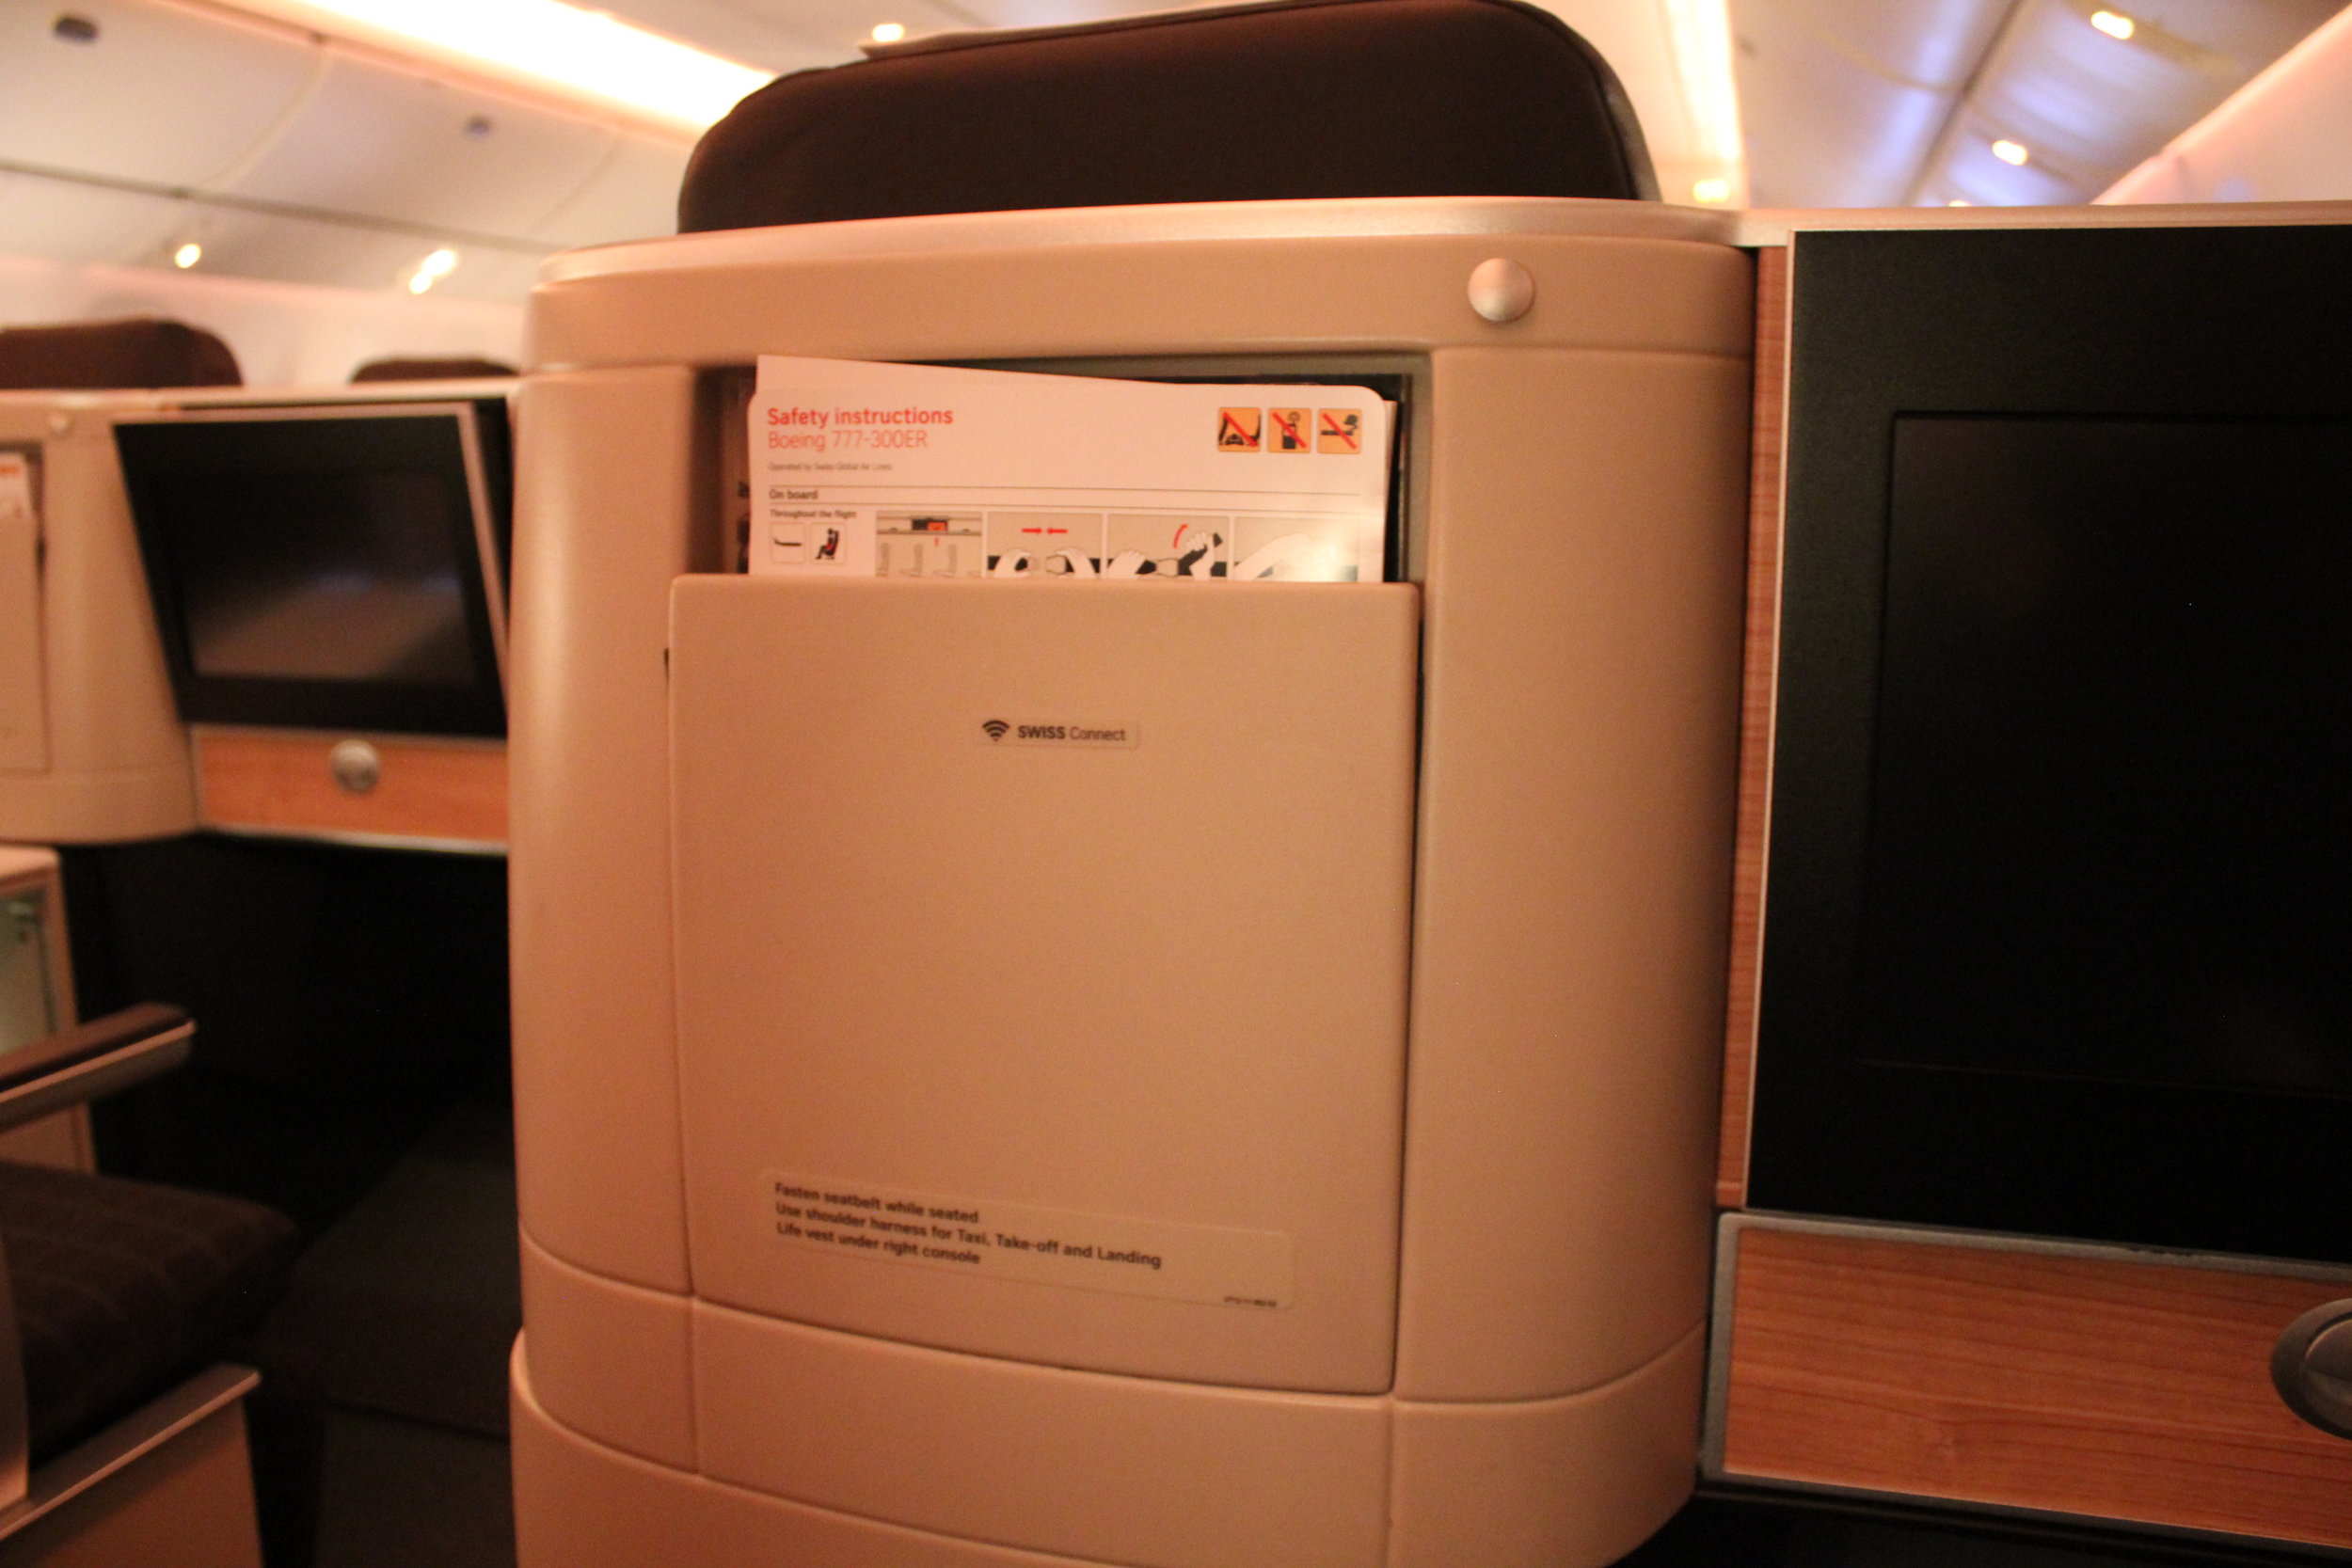 Swiss 777 business class – Seat back pocket